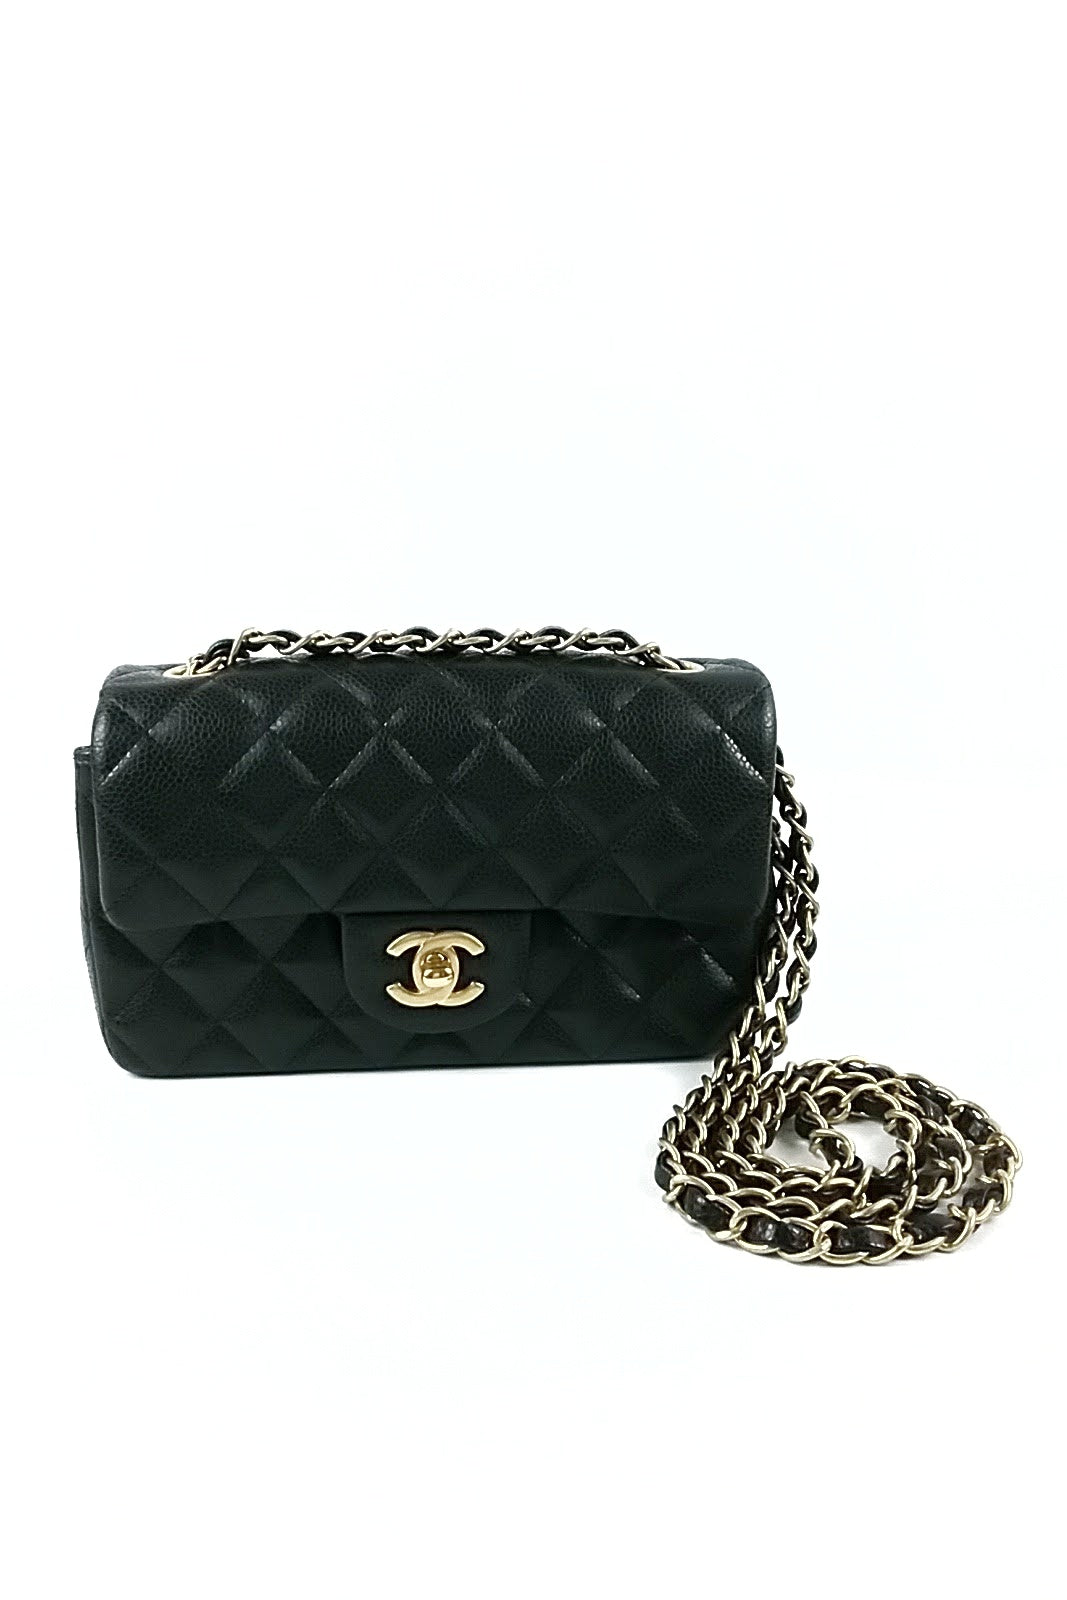 Black Caviar Rectangular Mini Flap Bag